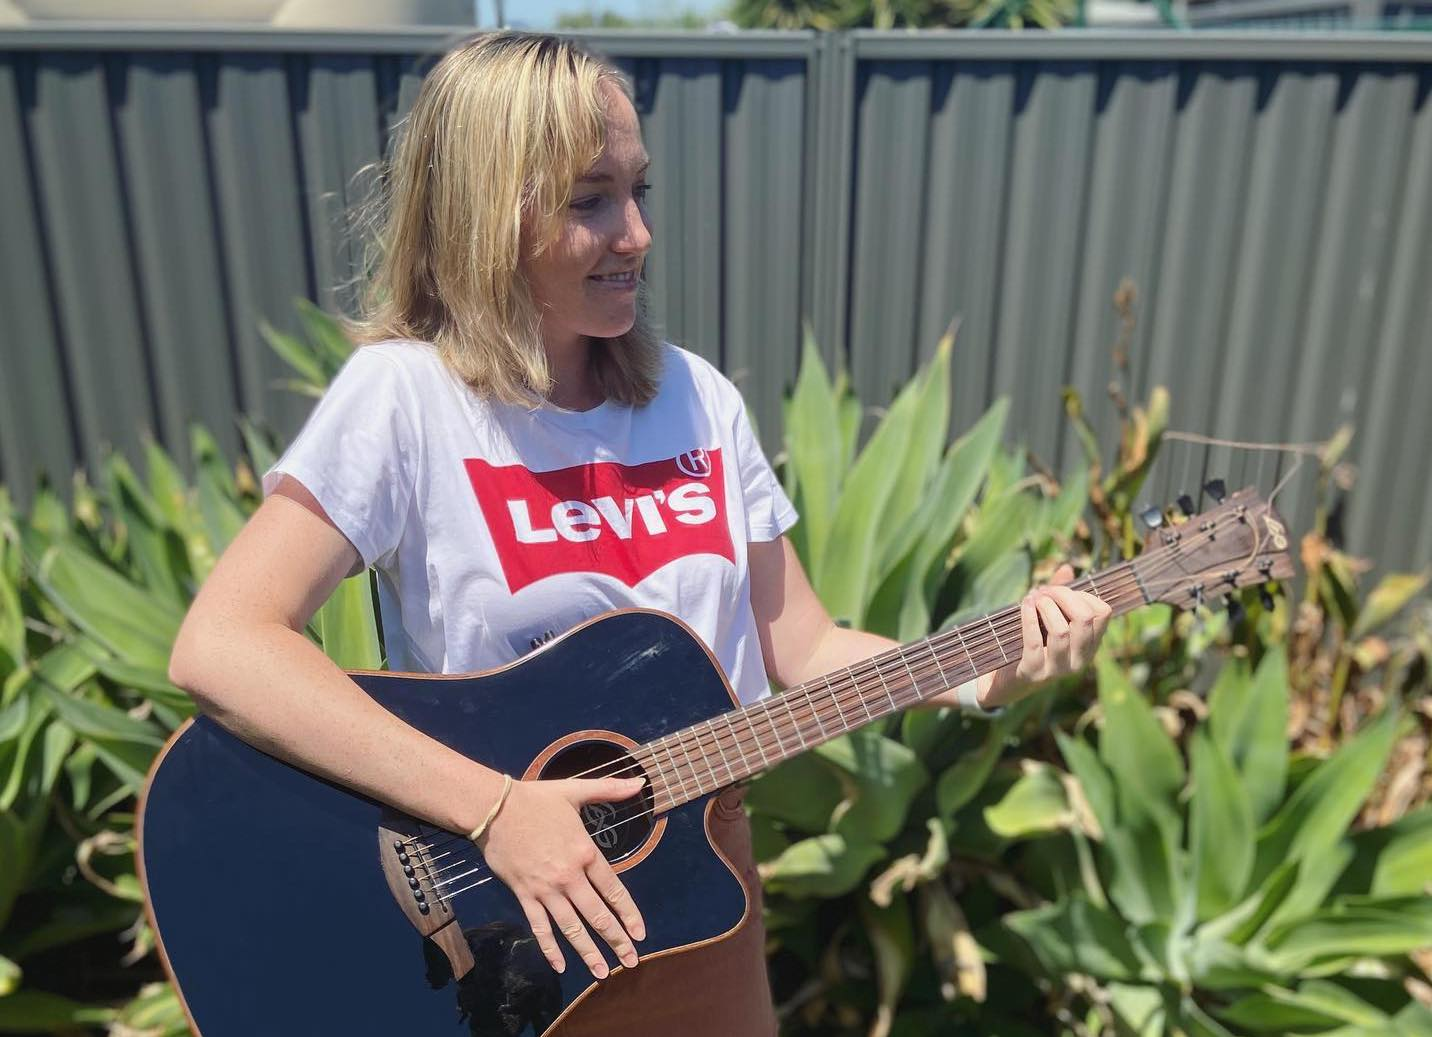 Carly Cracknell Second Valley Caravan Park and Jetty Store fundraiser